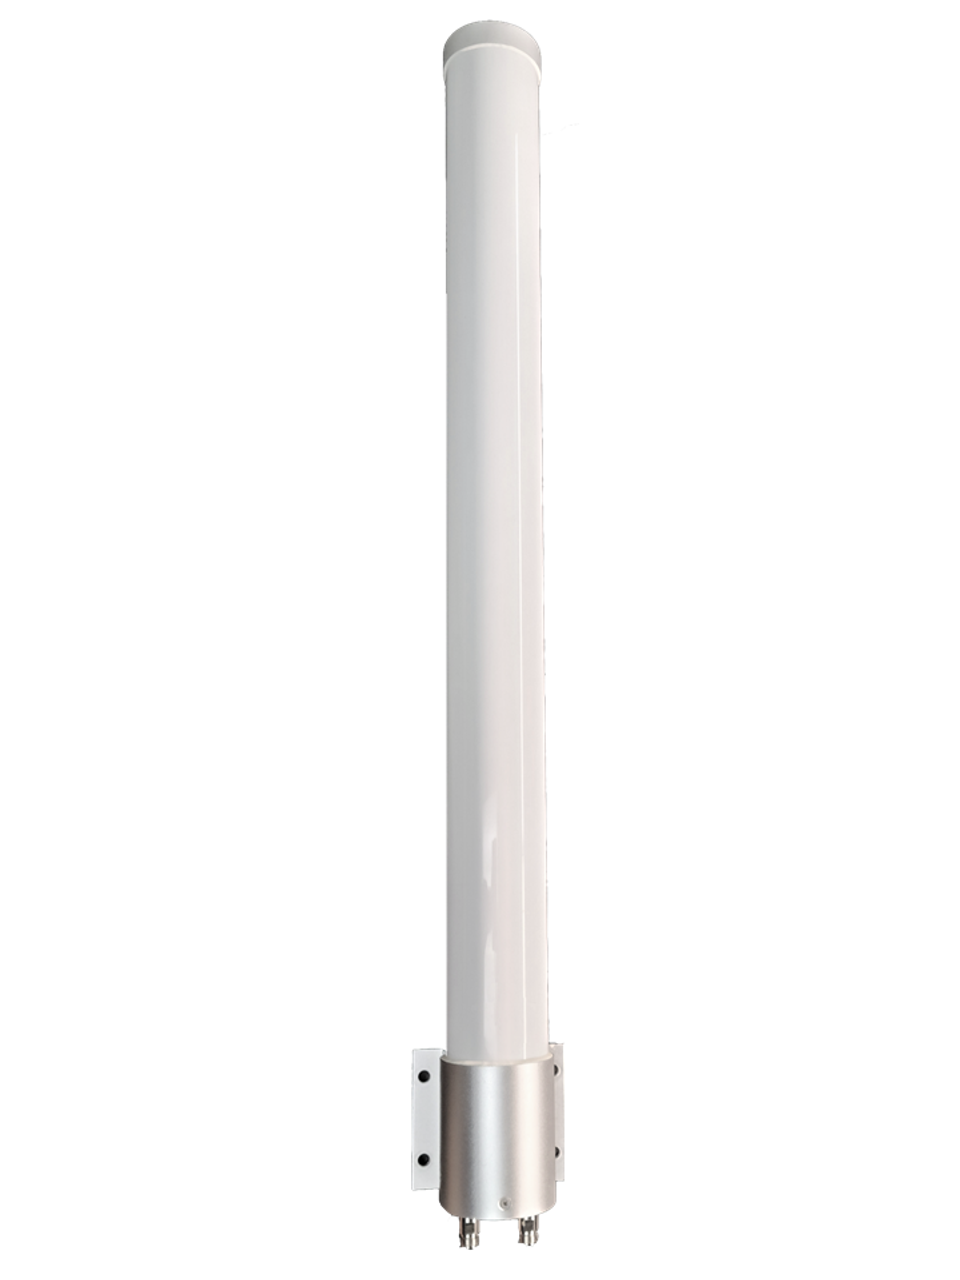 M39 Omni Directional MIMO 2 x Cellular 4G LTE CBRS 5G NR M2M IoT Antenna for T-Mobile 5G Internet Gateway